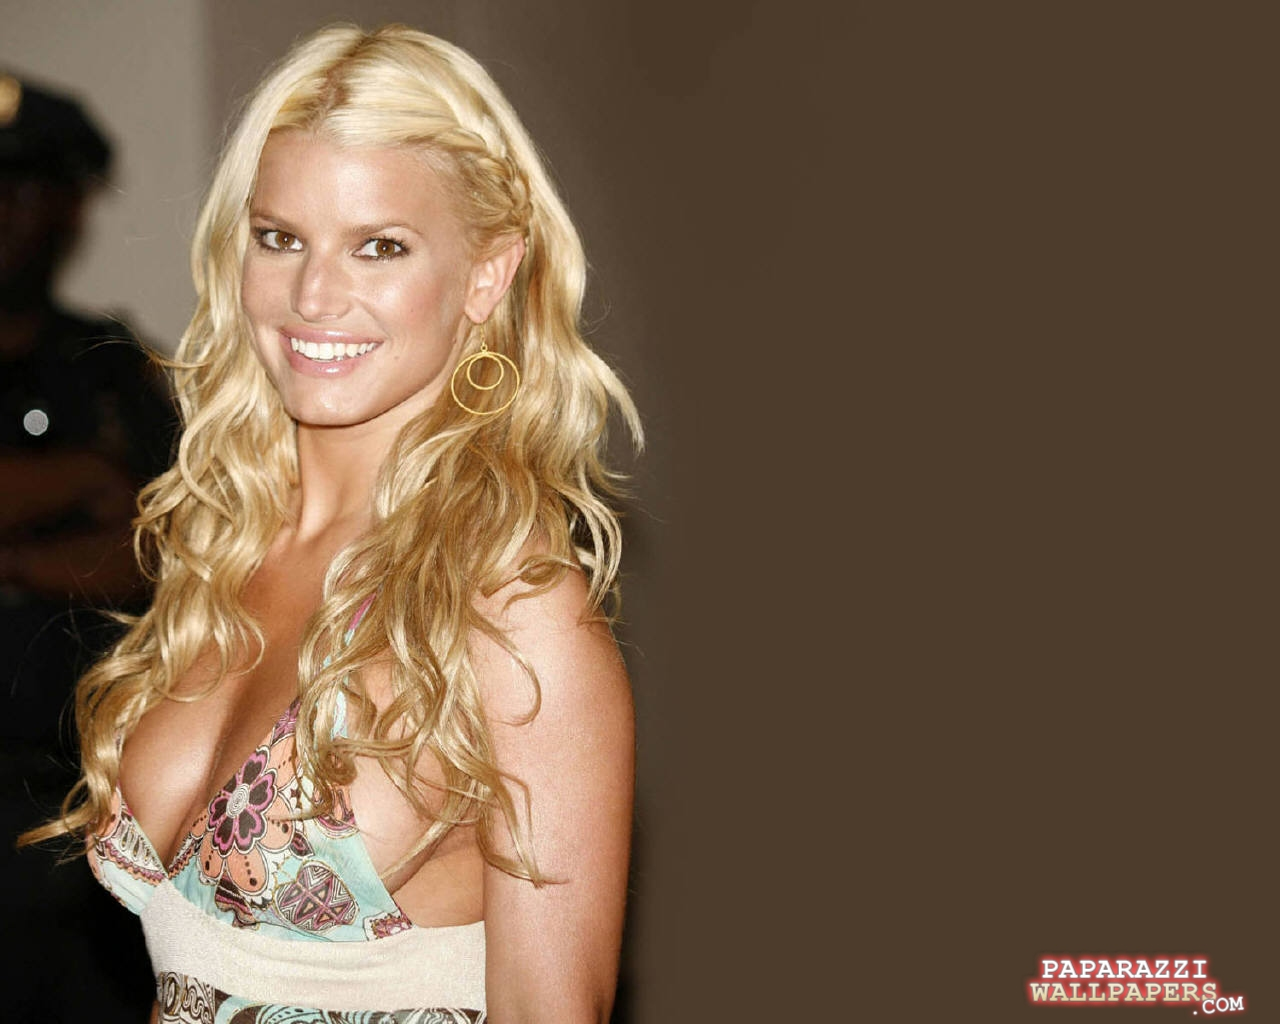 jessica simpson wallpapers 062